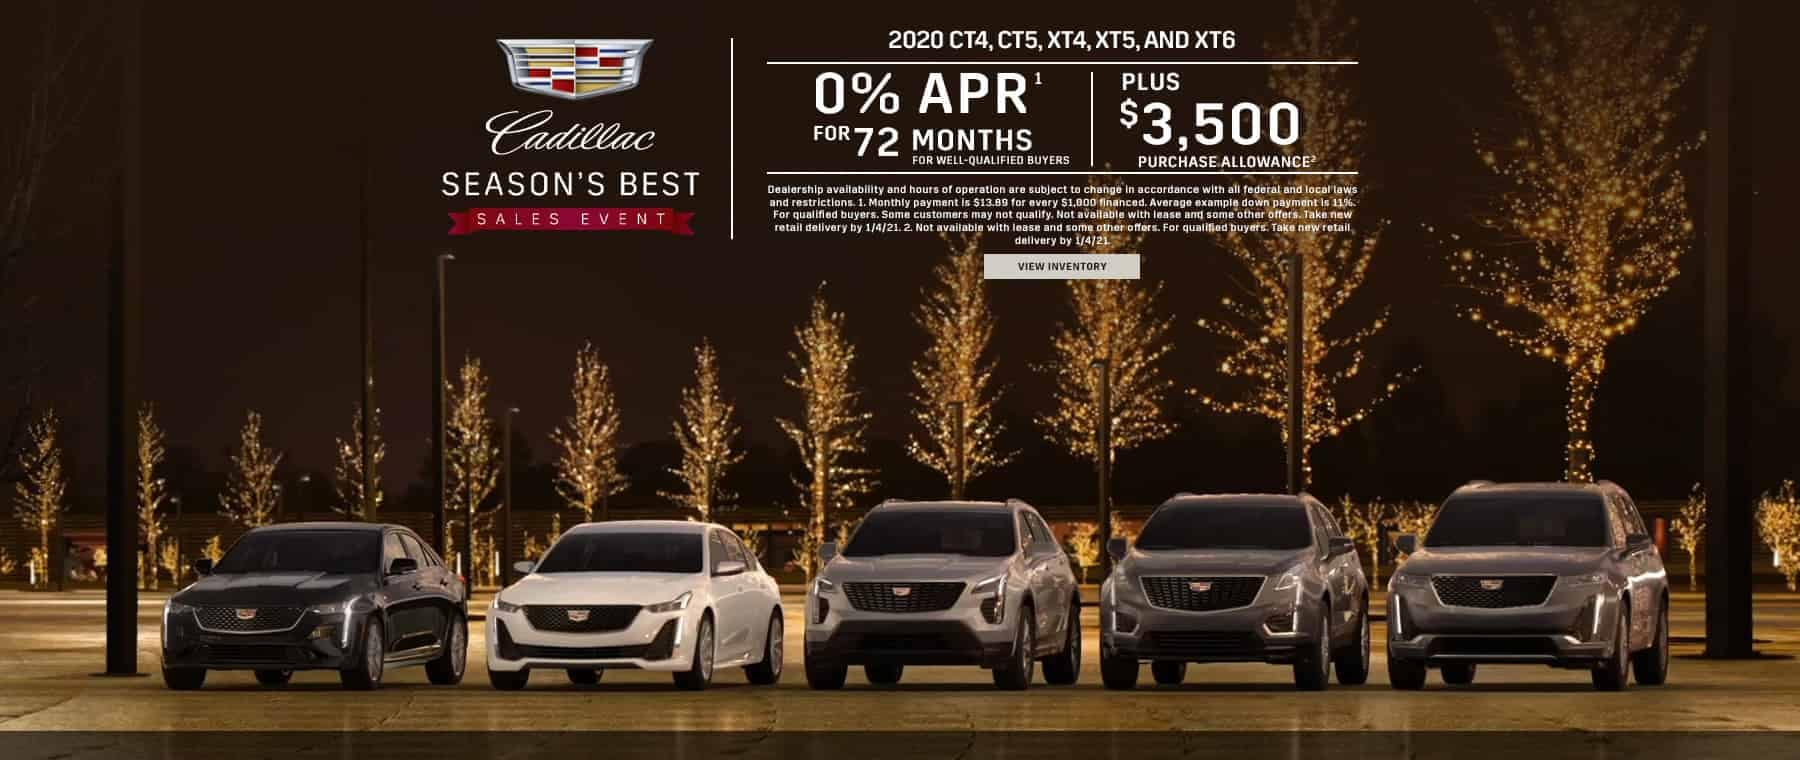 2020 CT4, CT5, XT4, XT5, and XT6 - 0% for 72 months